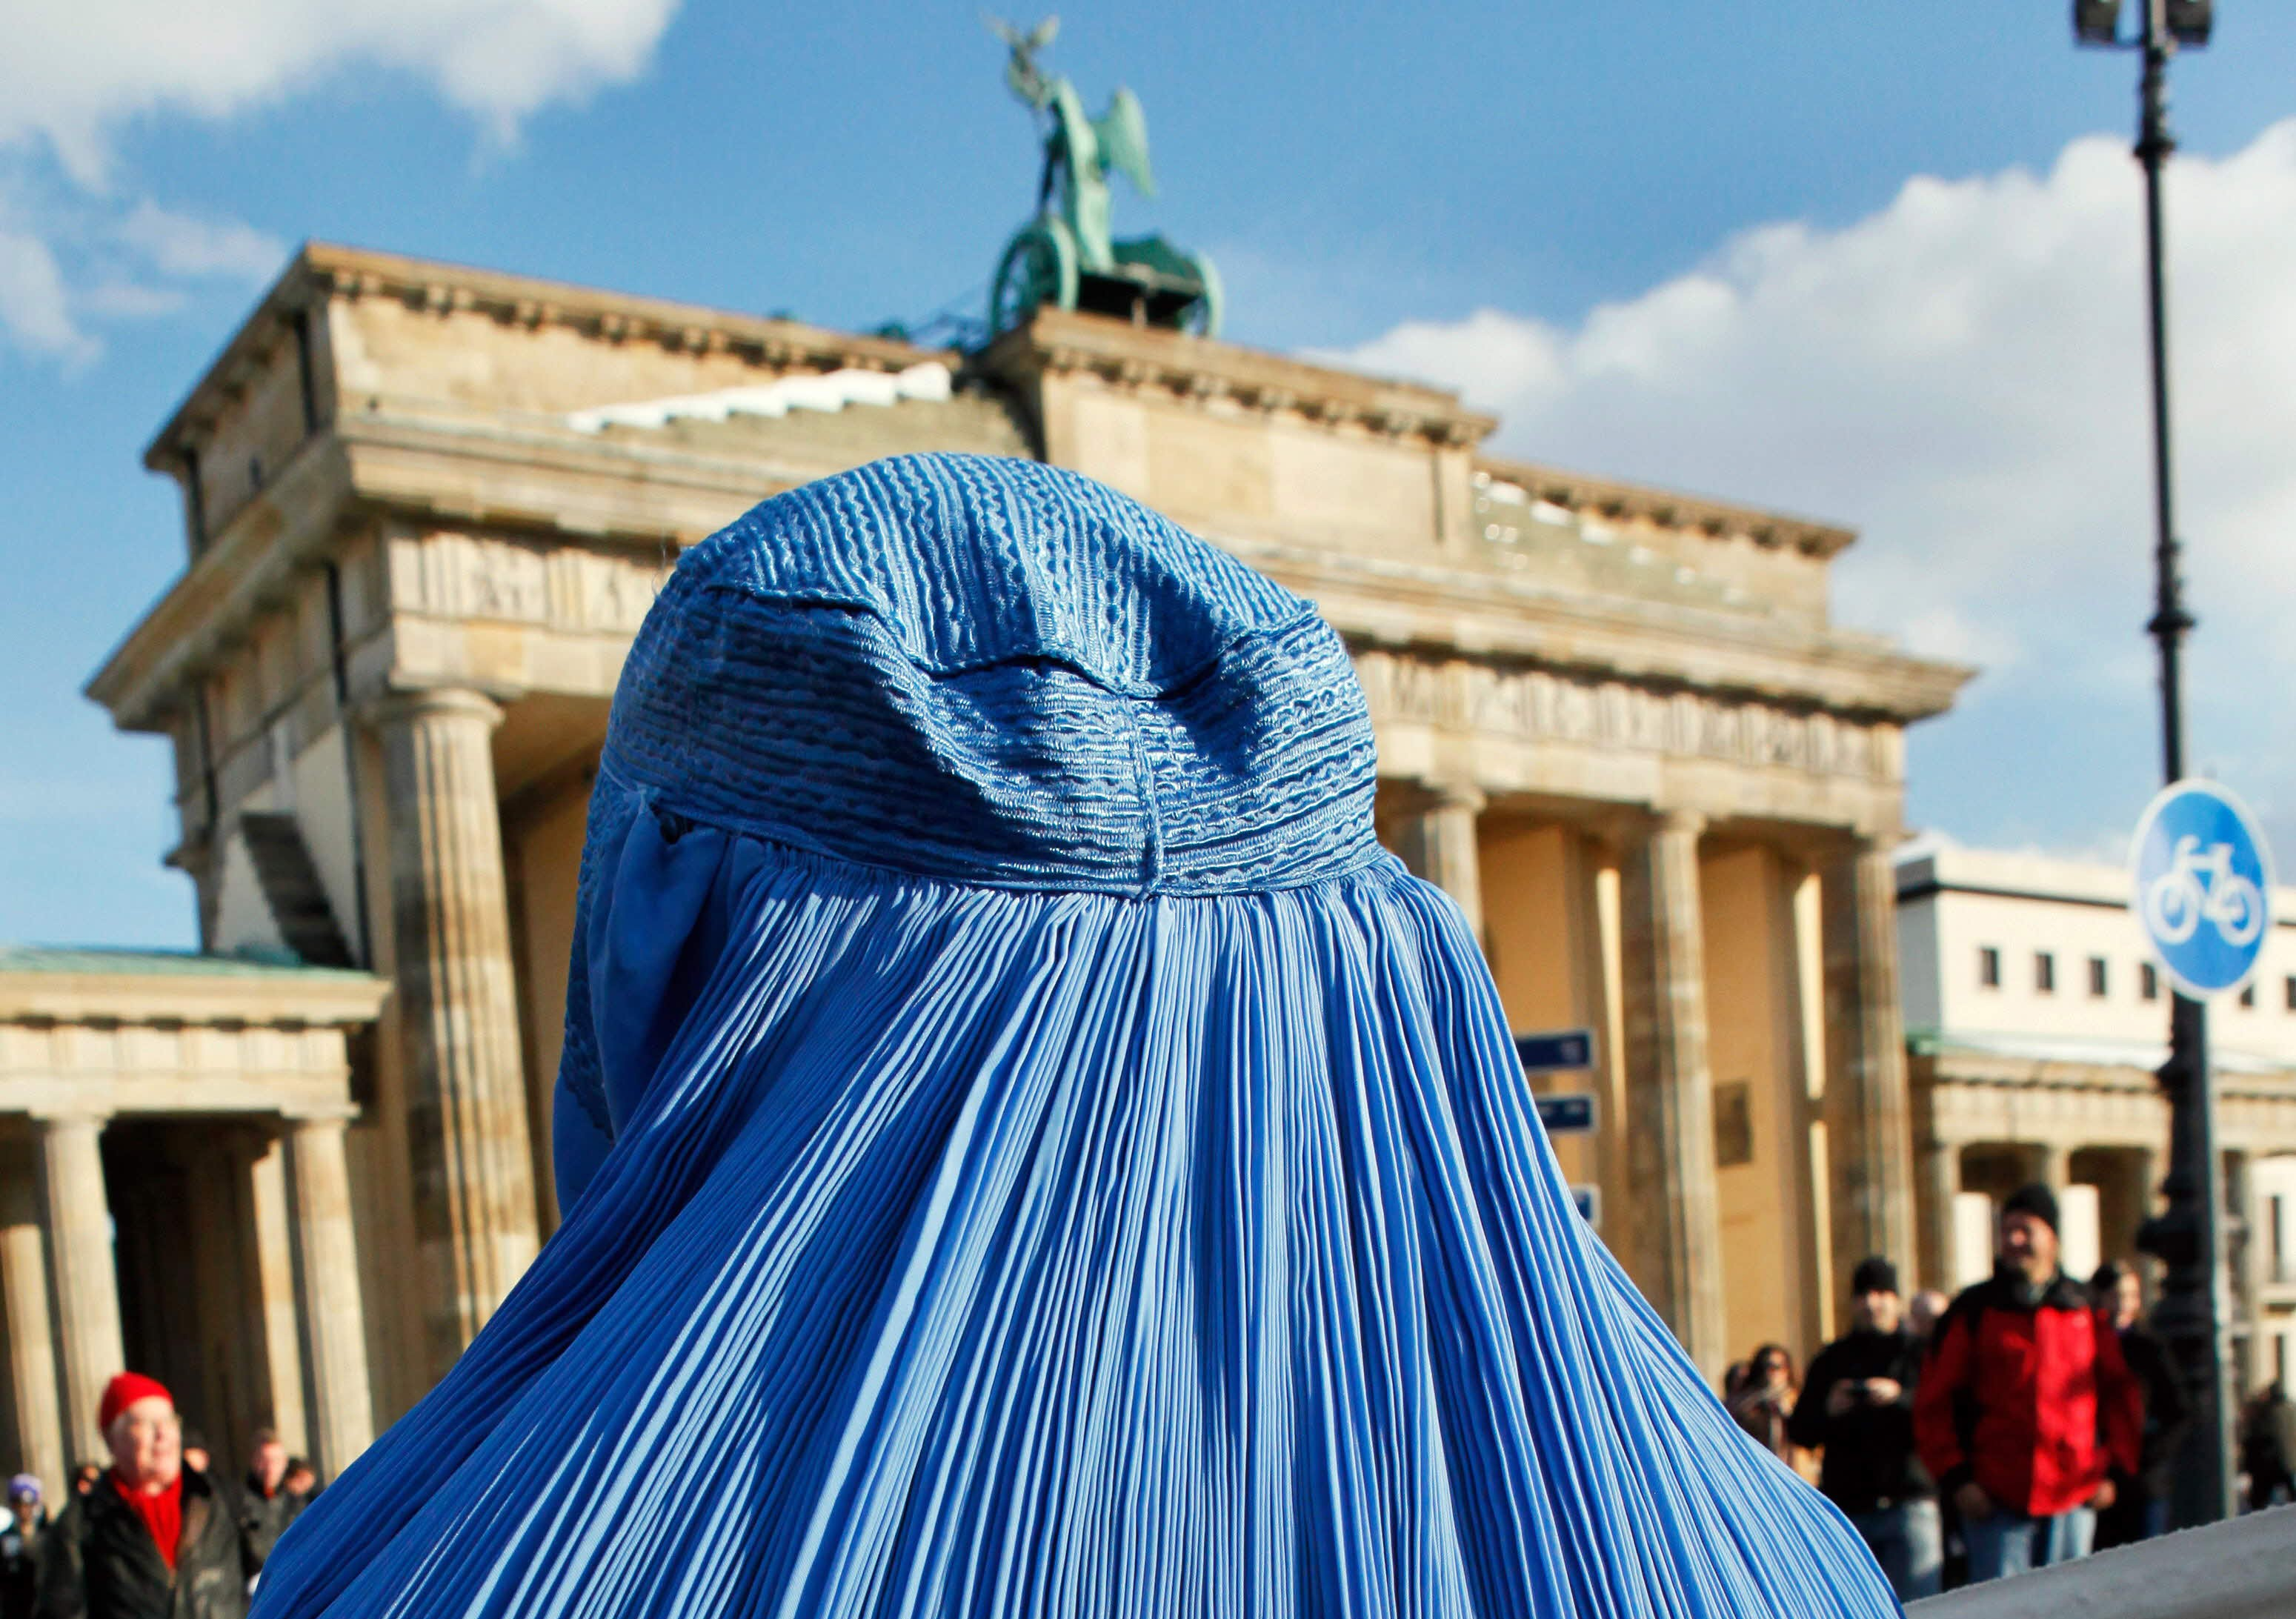 (FILES) Picture taken on February 20, 2010 shows a woman wearing a burka during a demonstration against the German Bundeswehr army's deployment in Afghanistan in front of the Brandenburg Gate in Berlin.